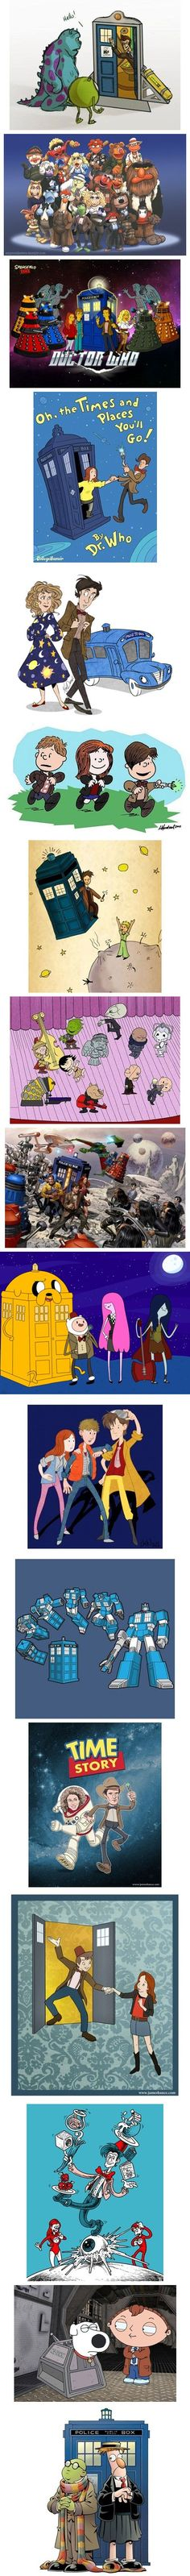 Doctor Who Crossovers